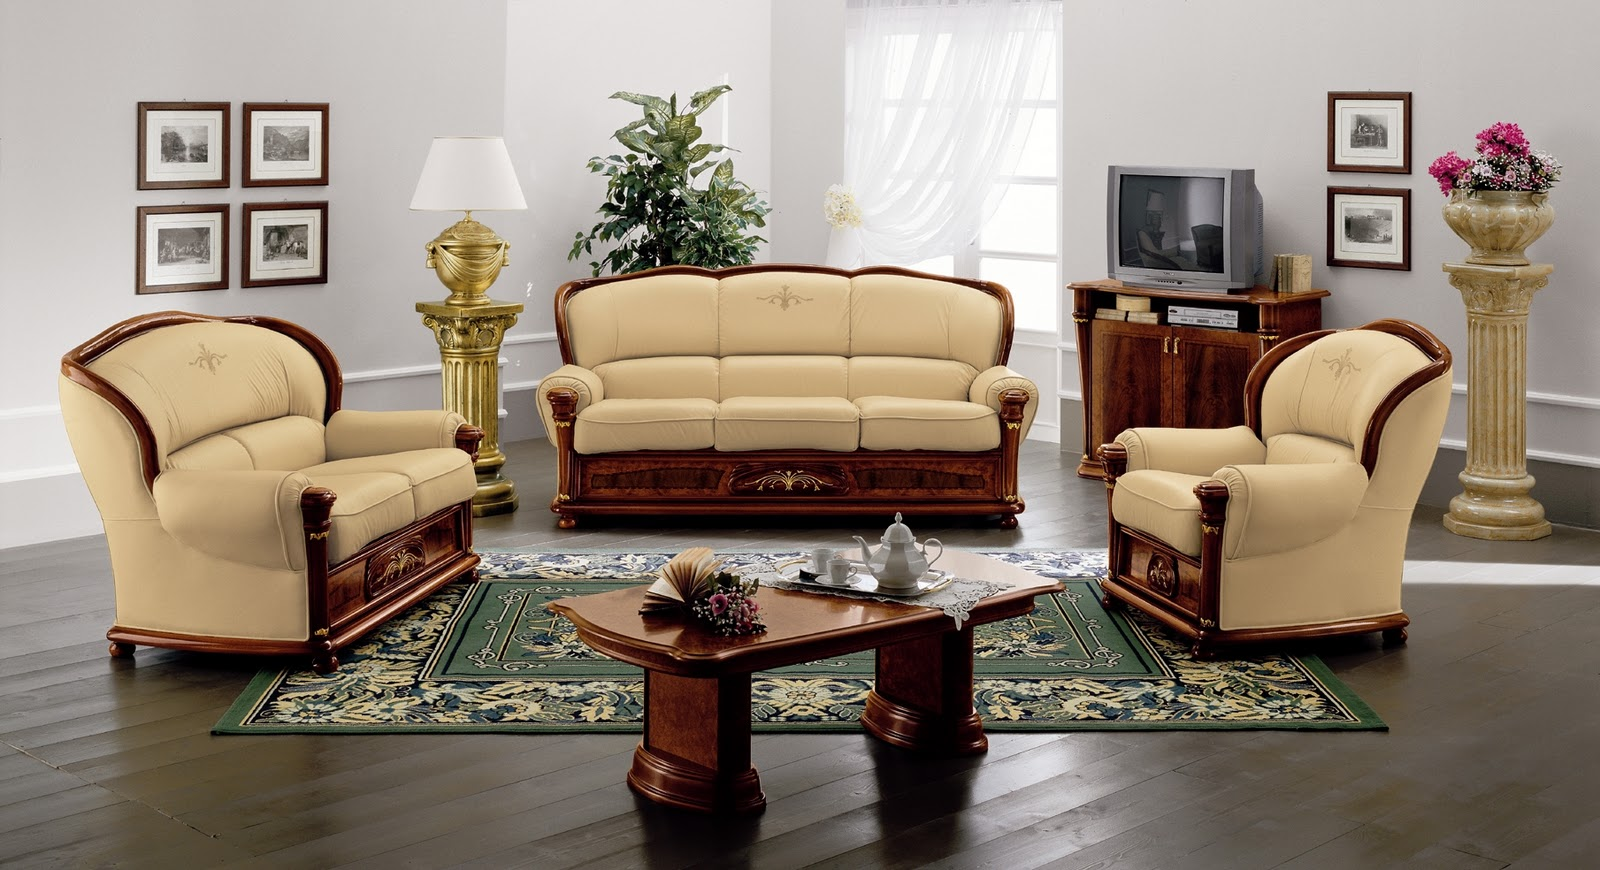 Living room sofa design photos living room interior designs for Interior design sofas living room